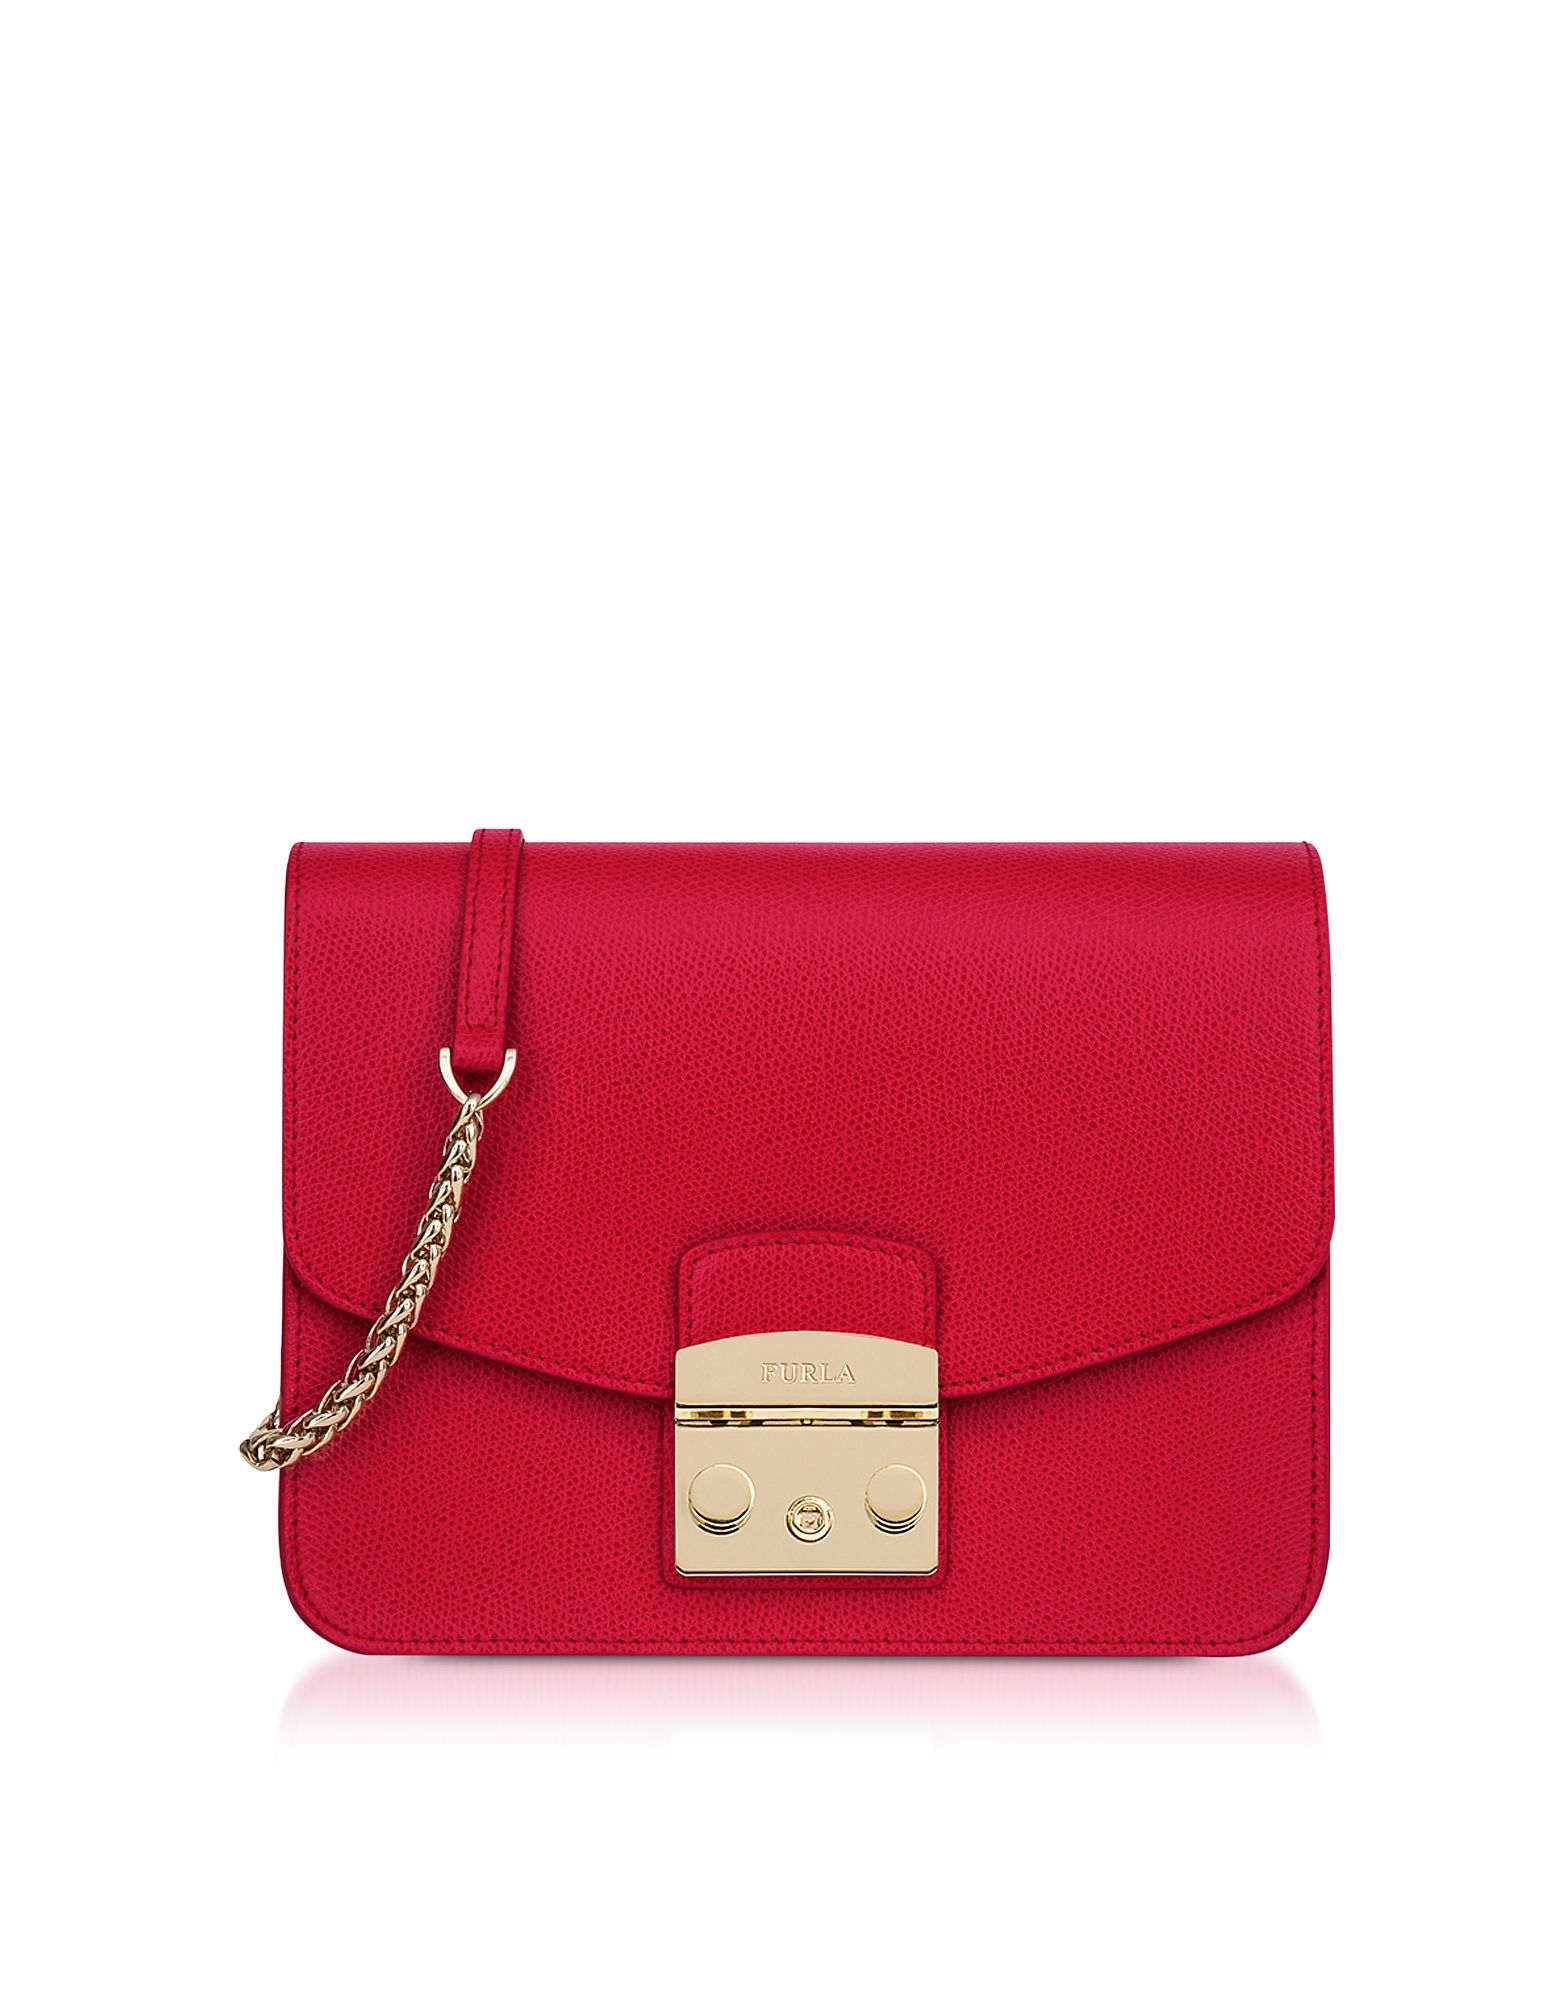 Furla Handbags, Ruby Red Leather Metropolis Small Crossbody